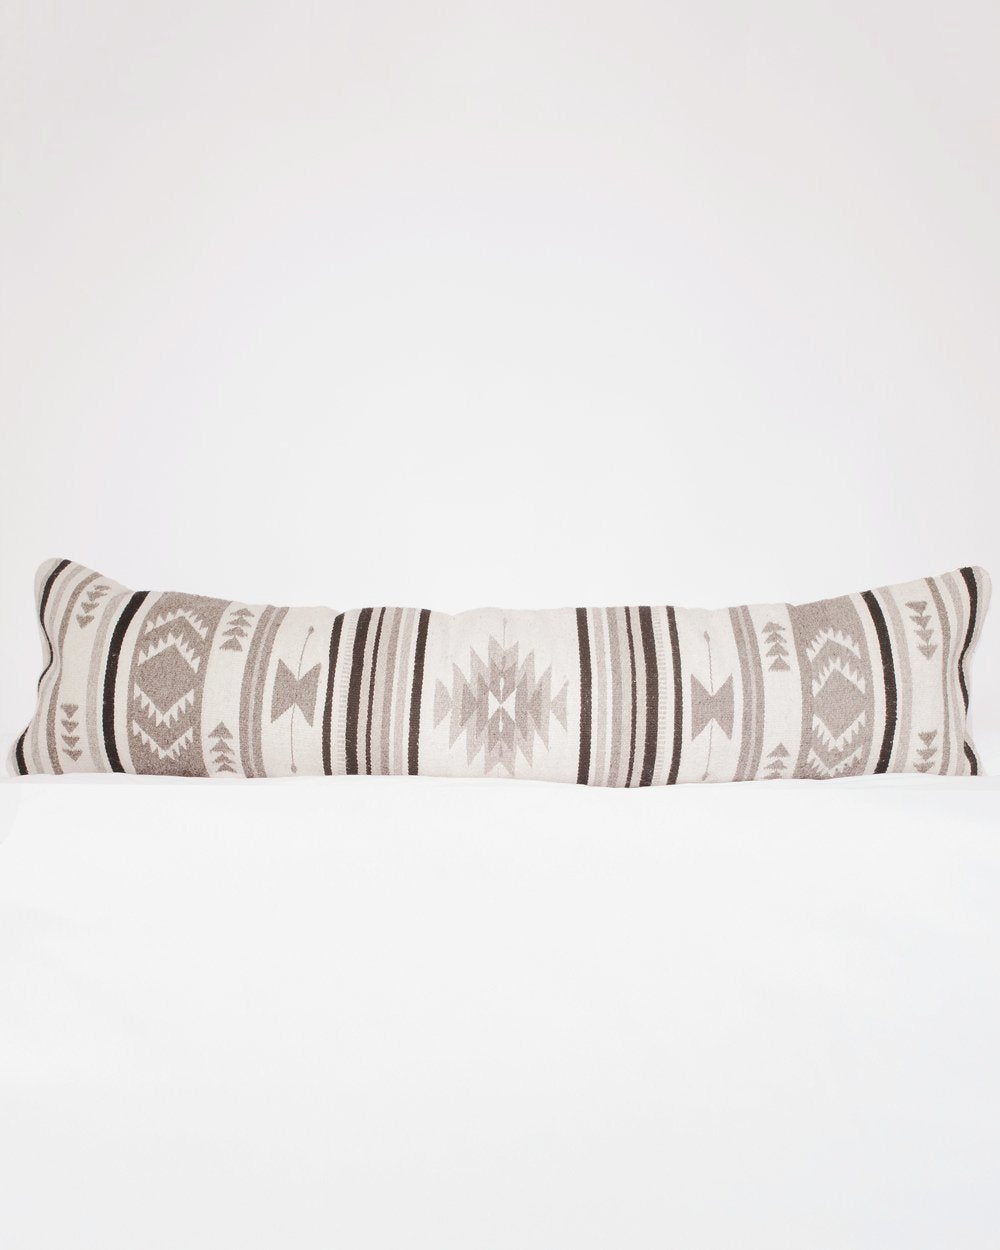 August Sage Mariposa Gris Lumbar Pillow Pillows August Sage